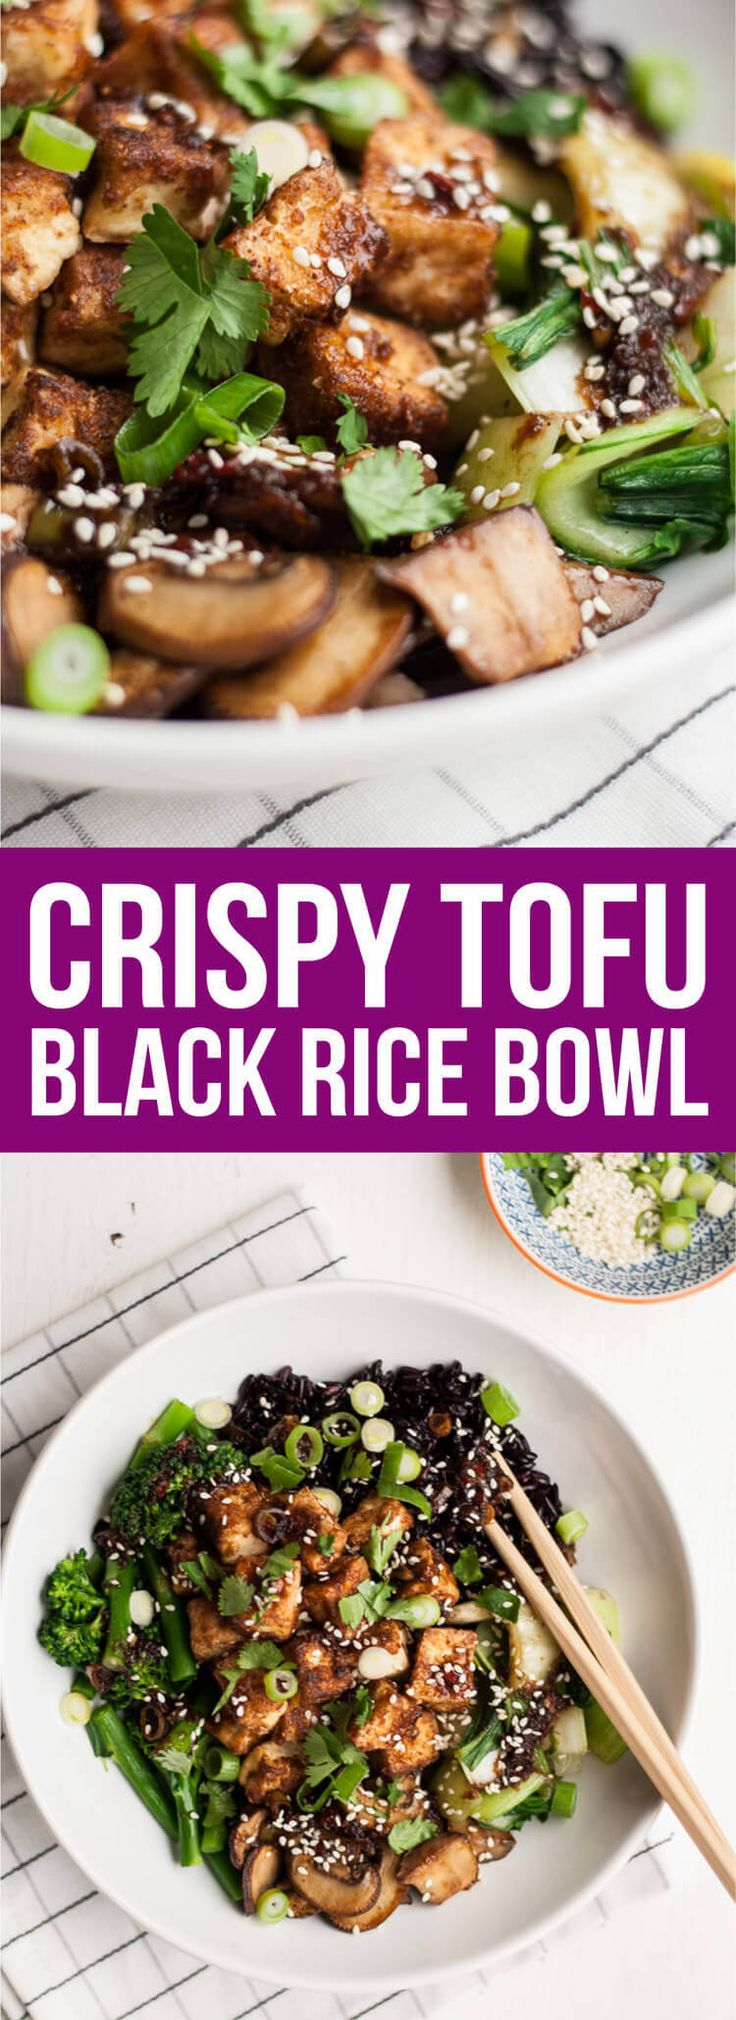 Crispy Tofu Black Rice Bowl - this vegan recipe is infused with Asian flavours, is quick and easy to make and is loaded with crispy, flavoursome tofu | eatloveeats.com